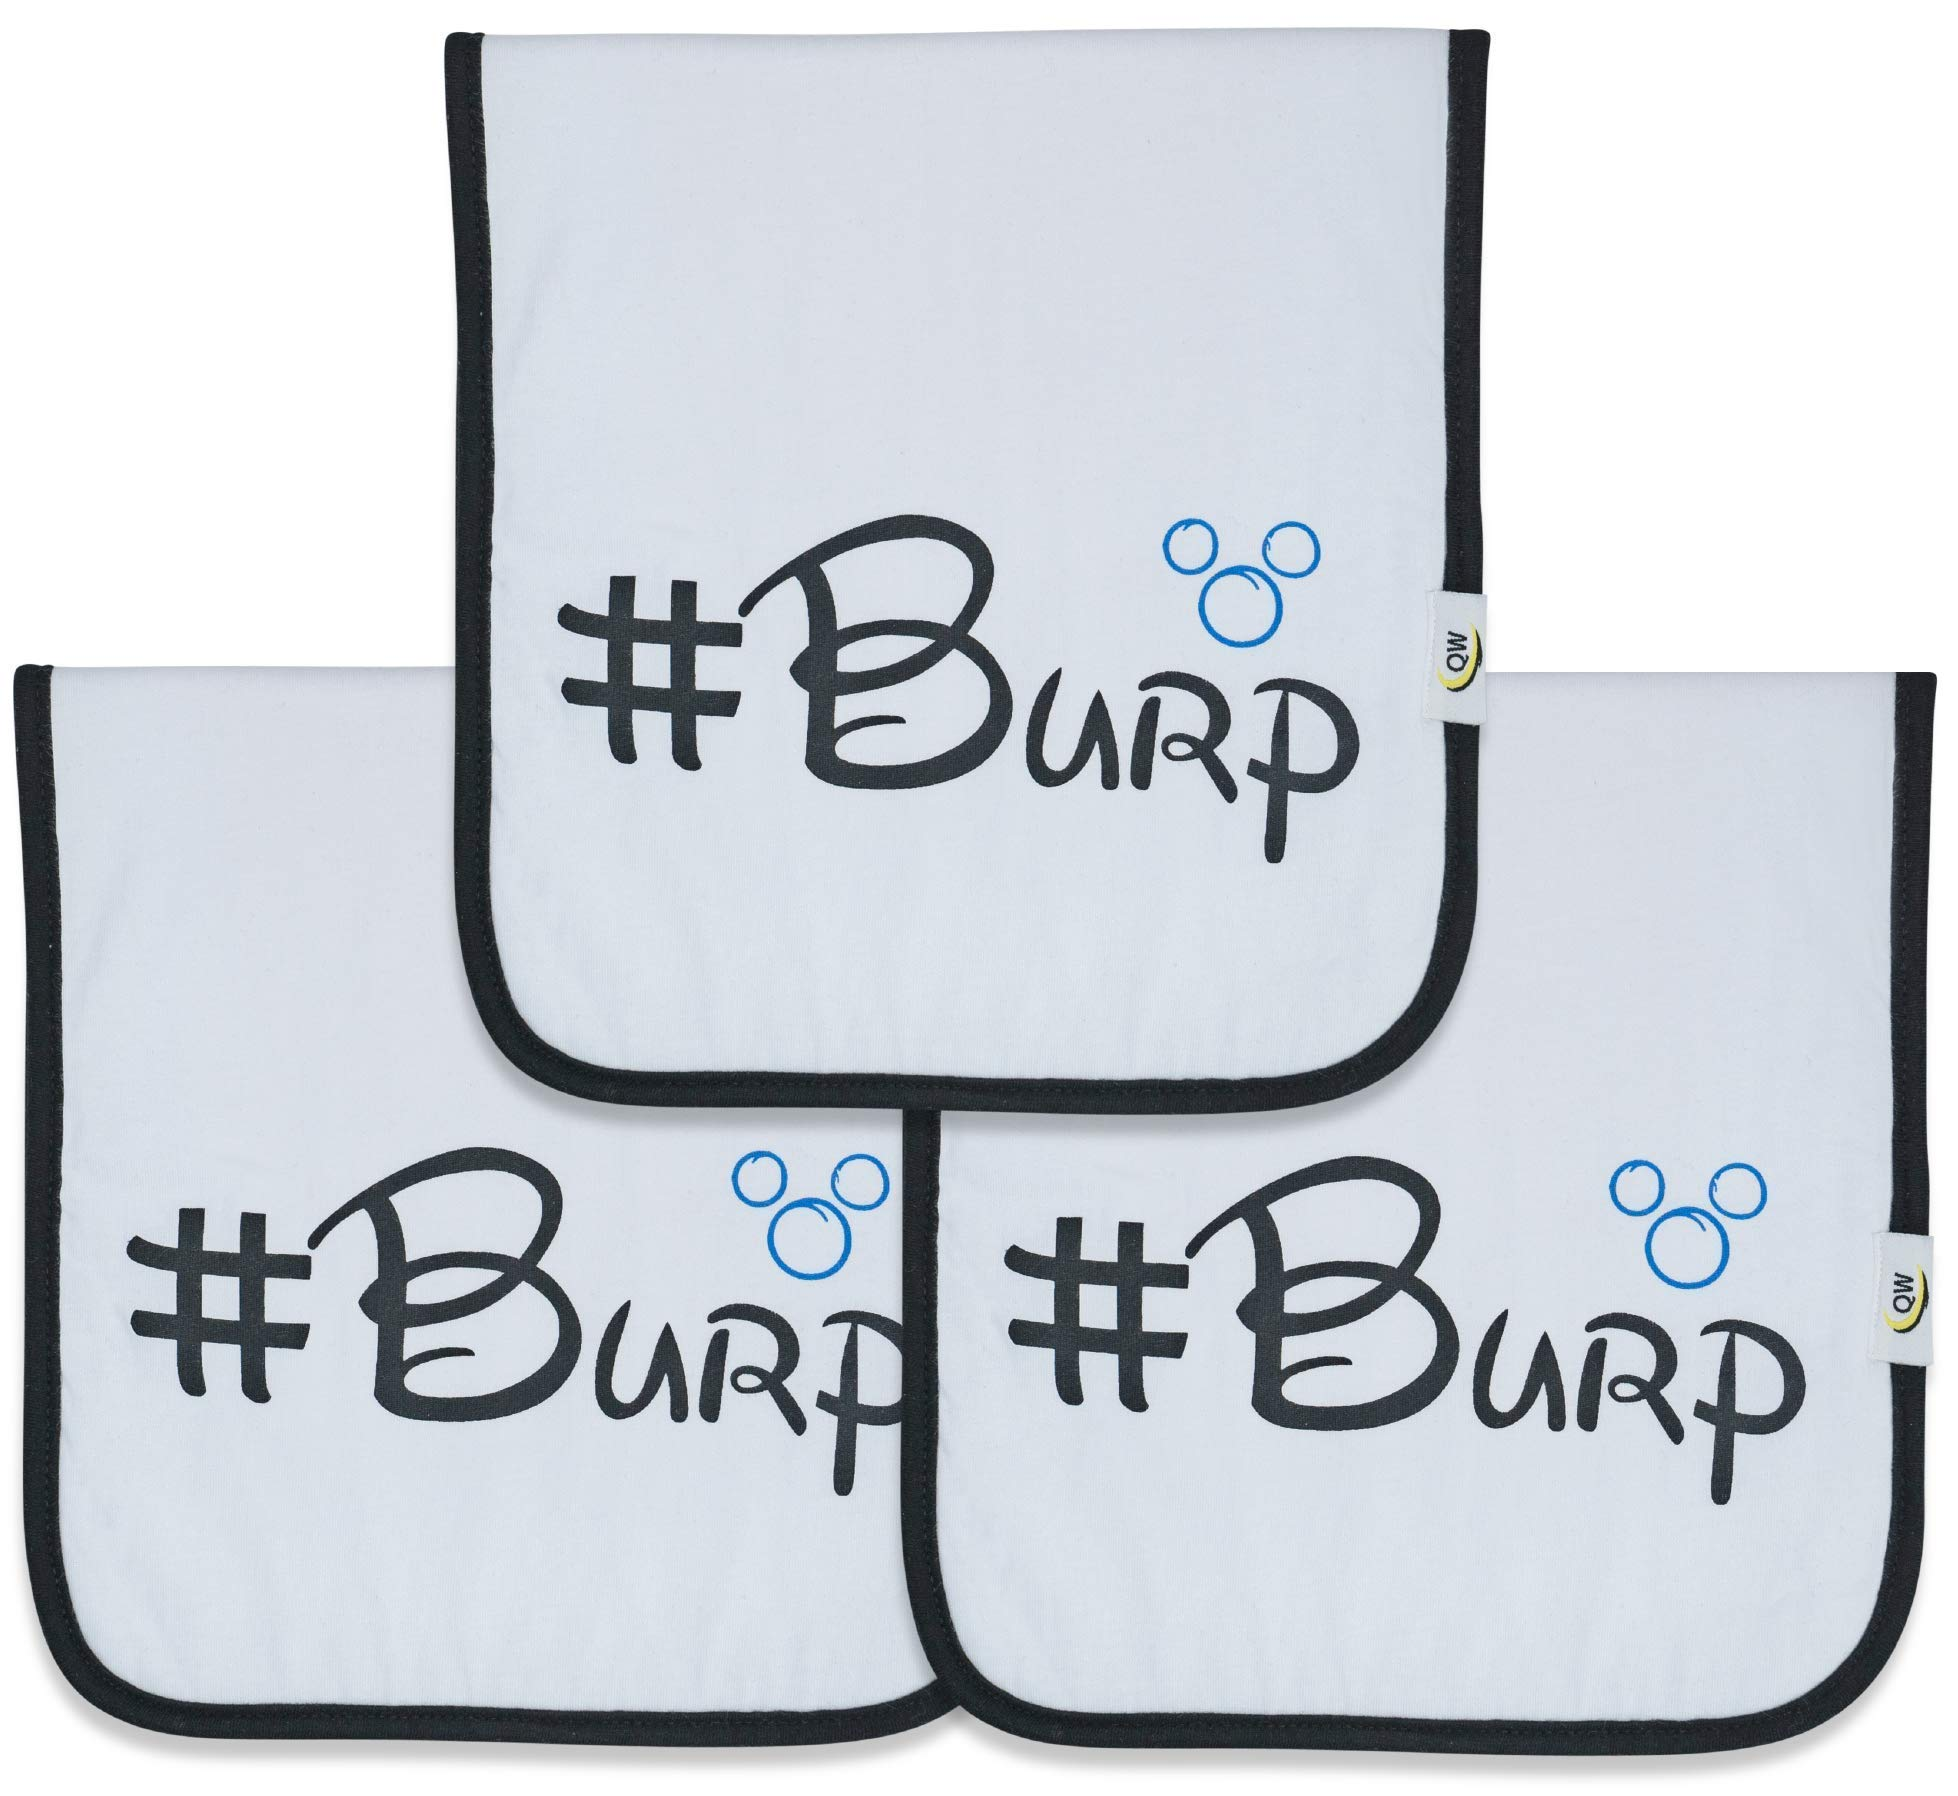 Quality World | Unbelievably THICK Baby Burp Cloths! | Large 21''x 10'' | 100% Organic Cotton | Water Resistant With 6 Absorbent Thick Cotton Layers | 3 Pack With a Premium Unique Design by QW